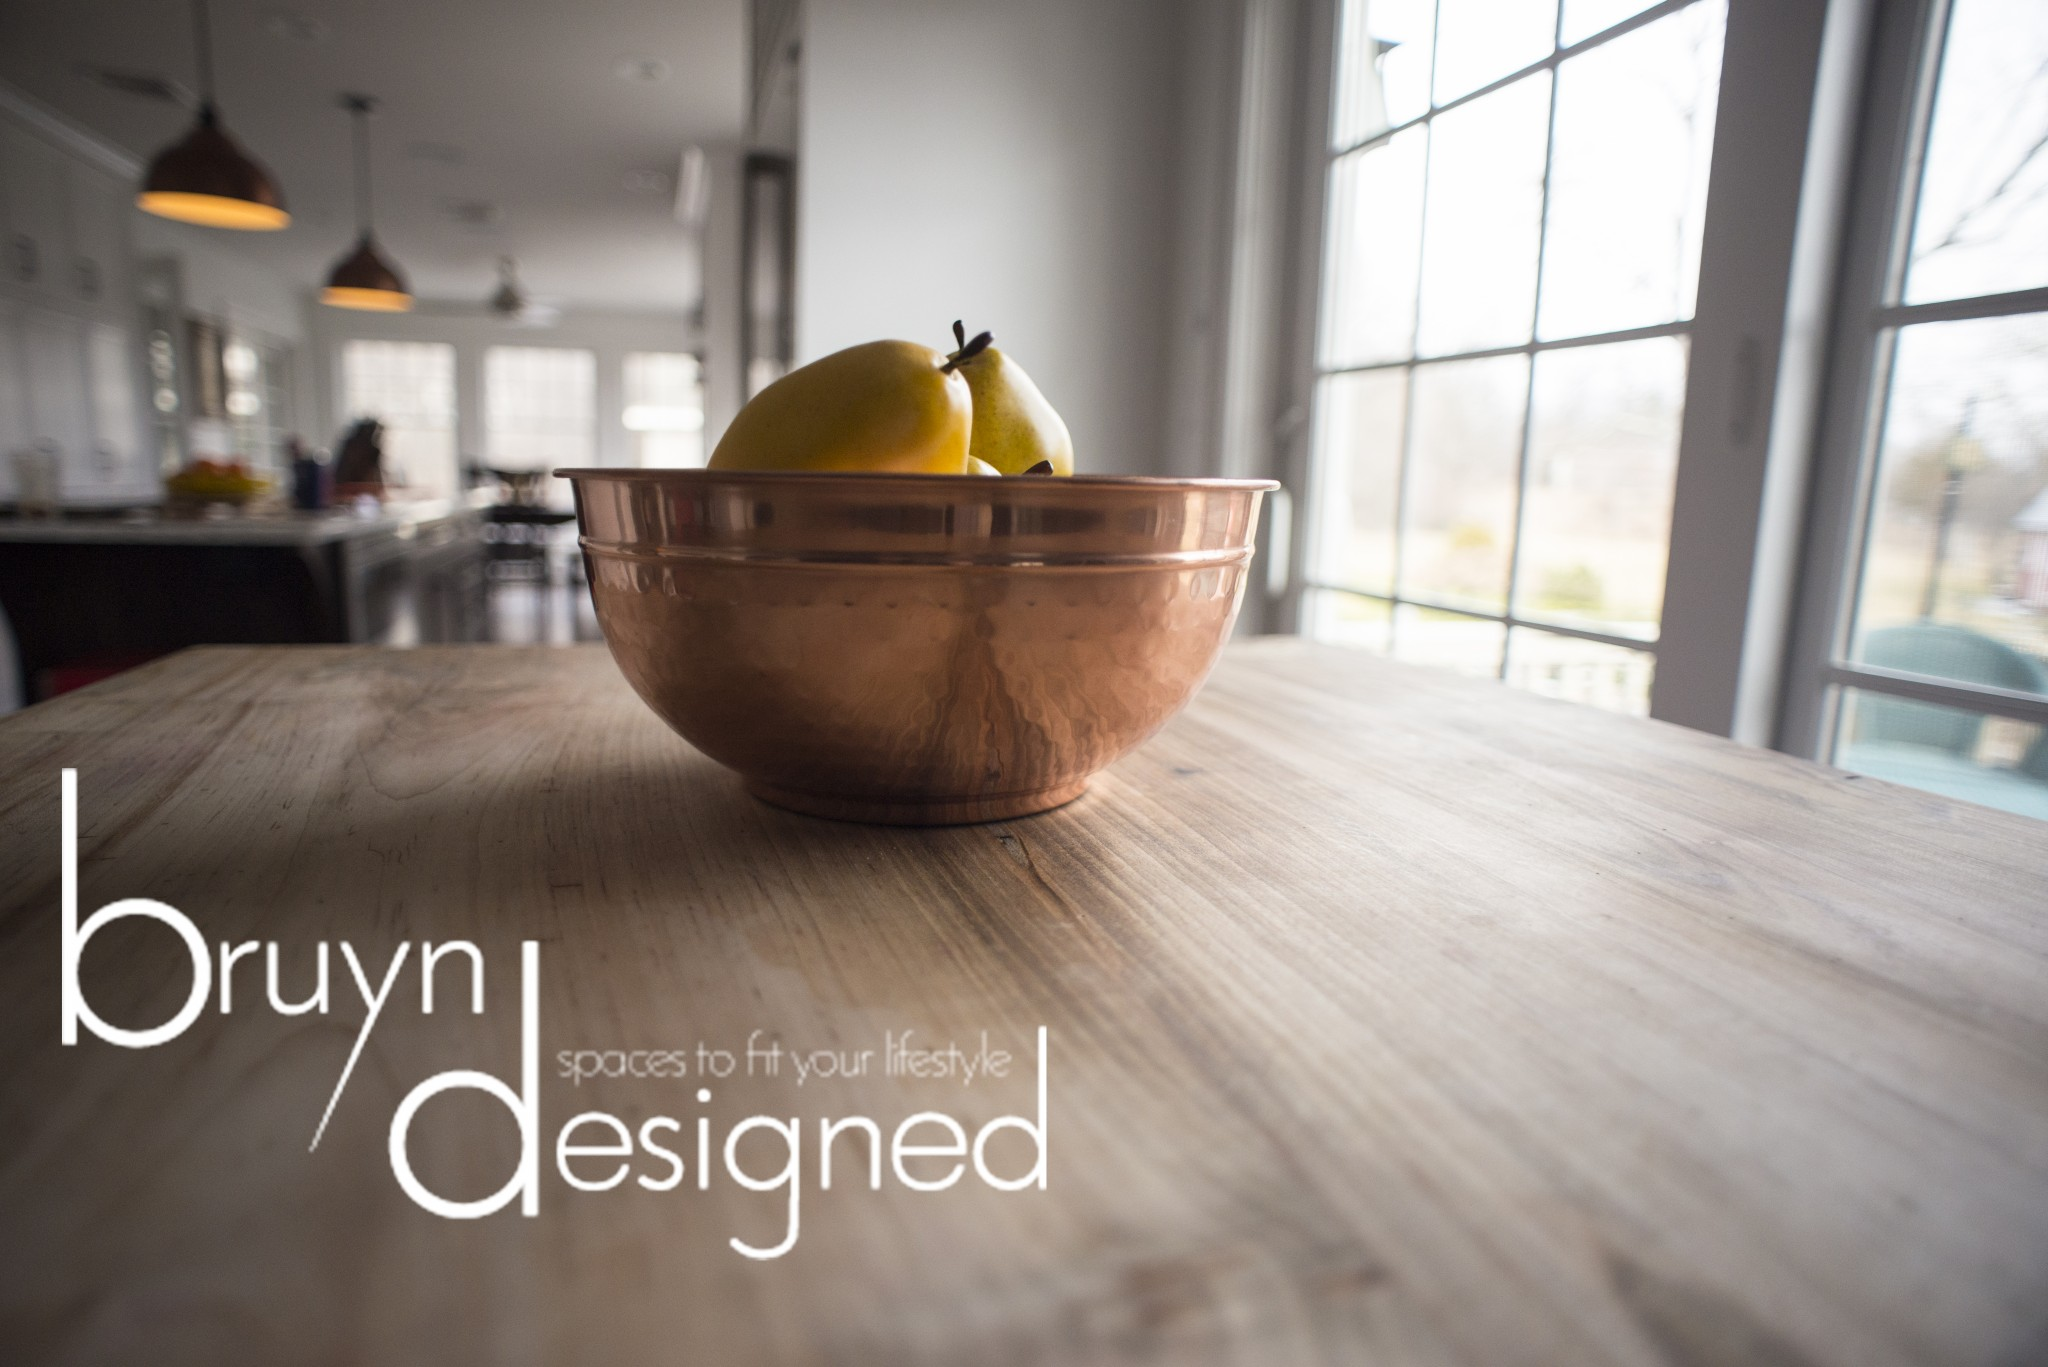 bruyn designed, fall harvest